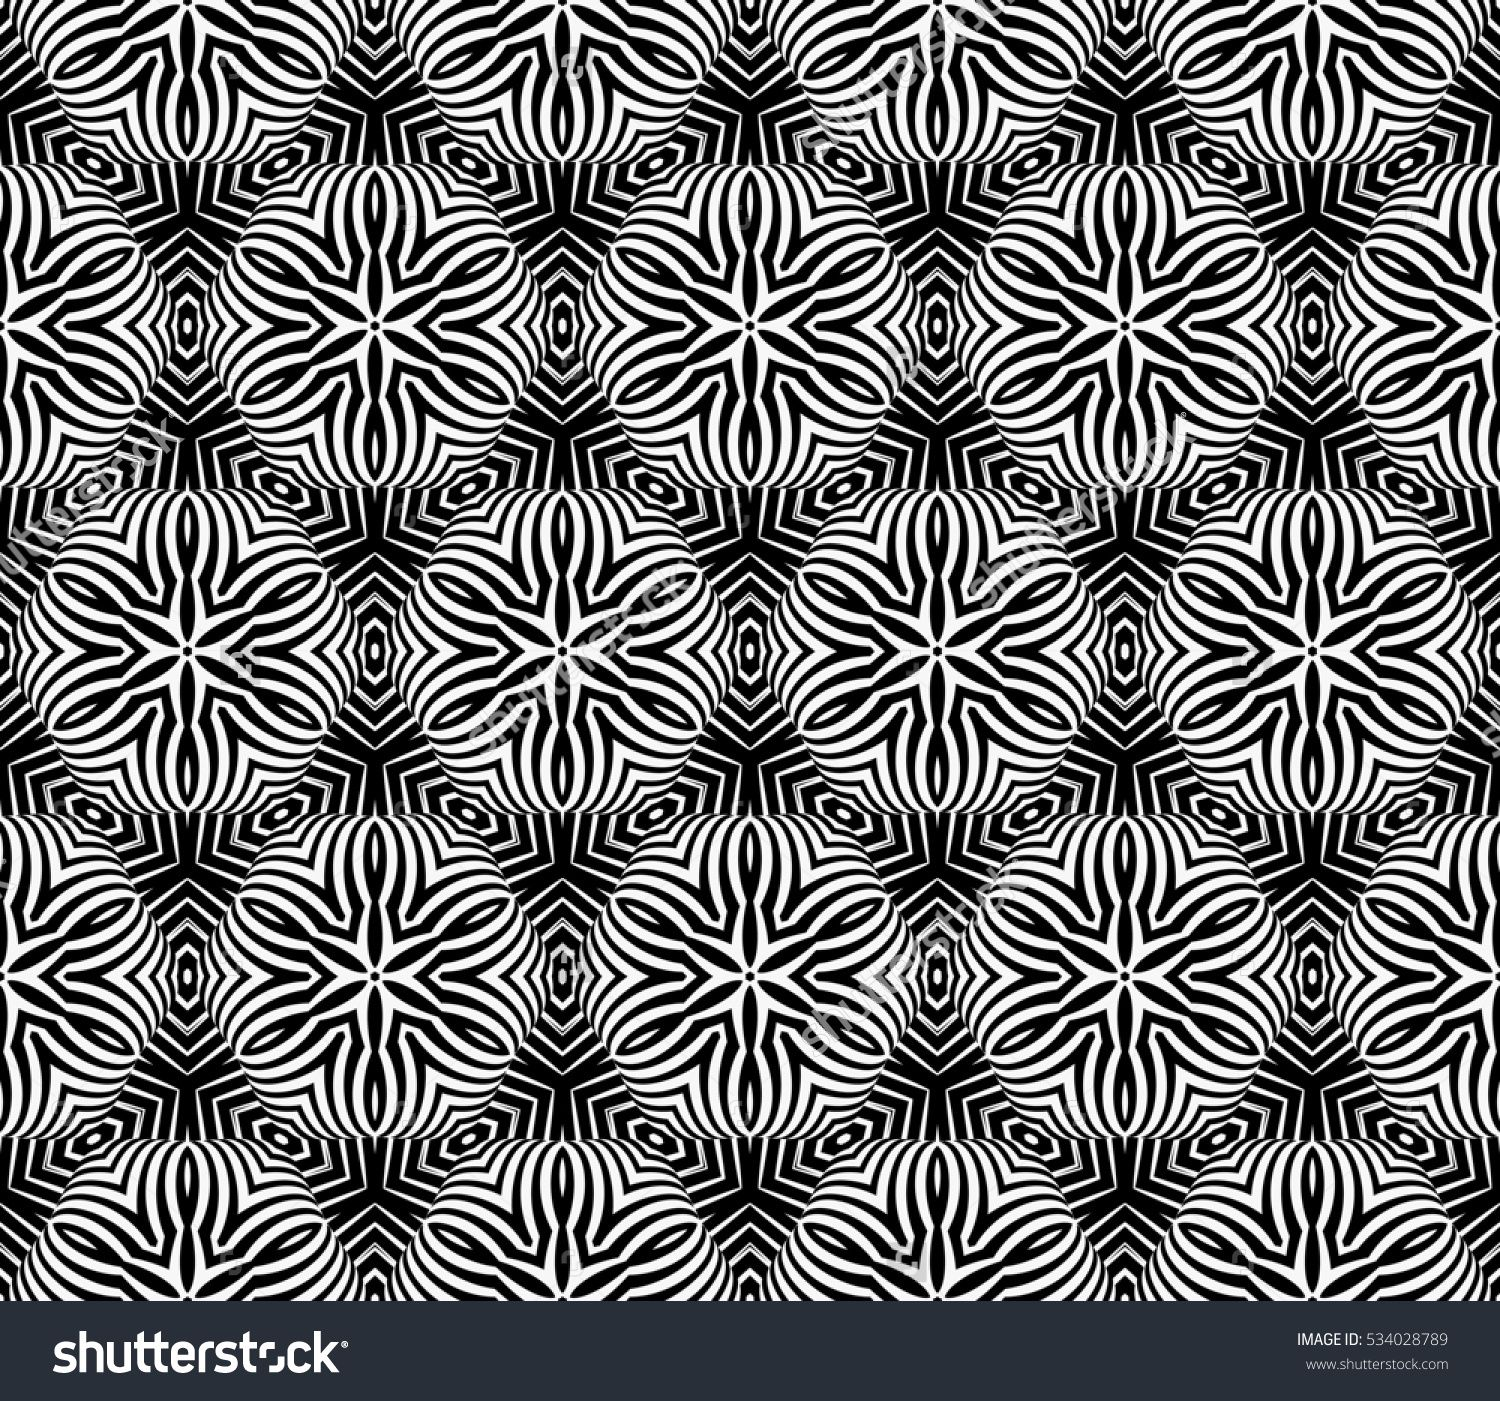 Volume seamless pattern of abstract floral ornament raster copy